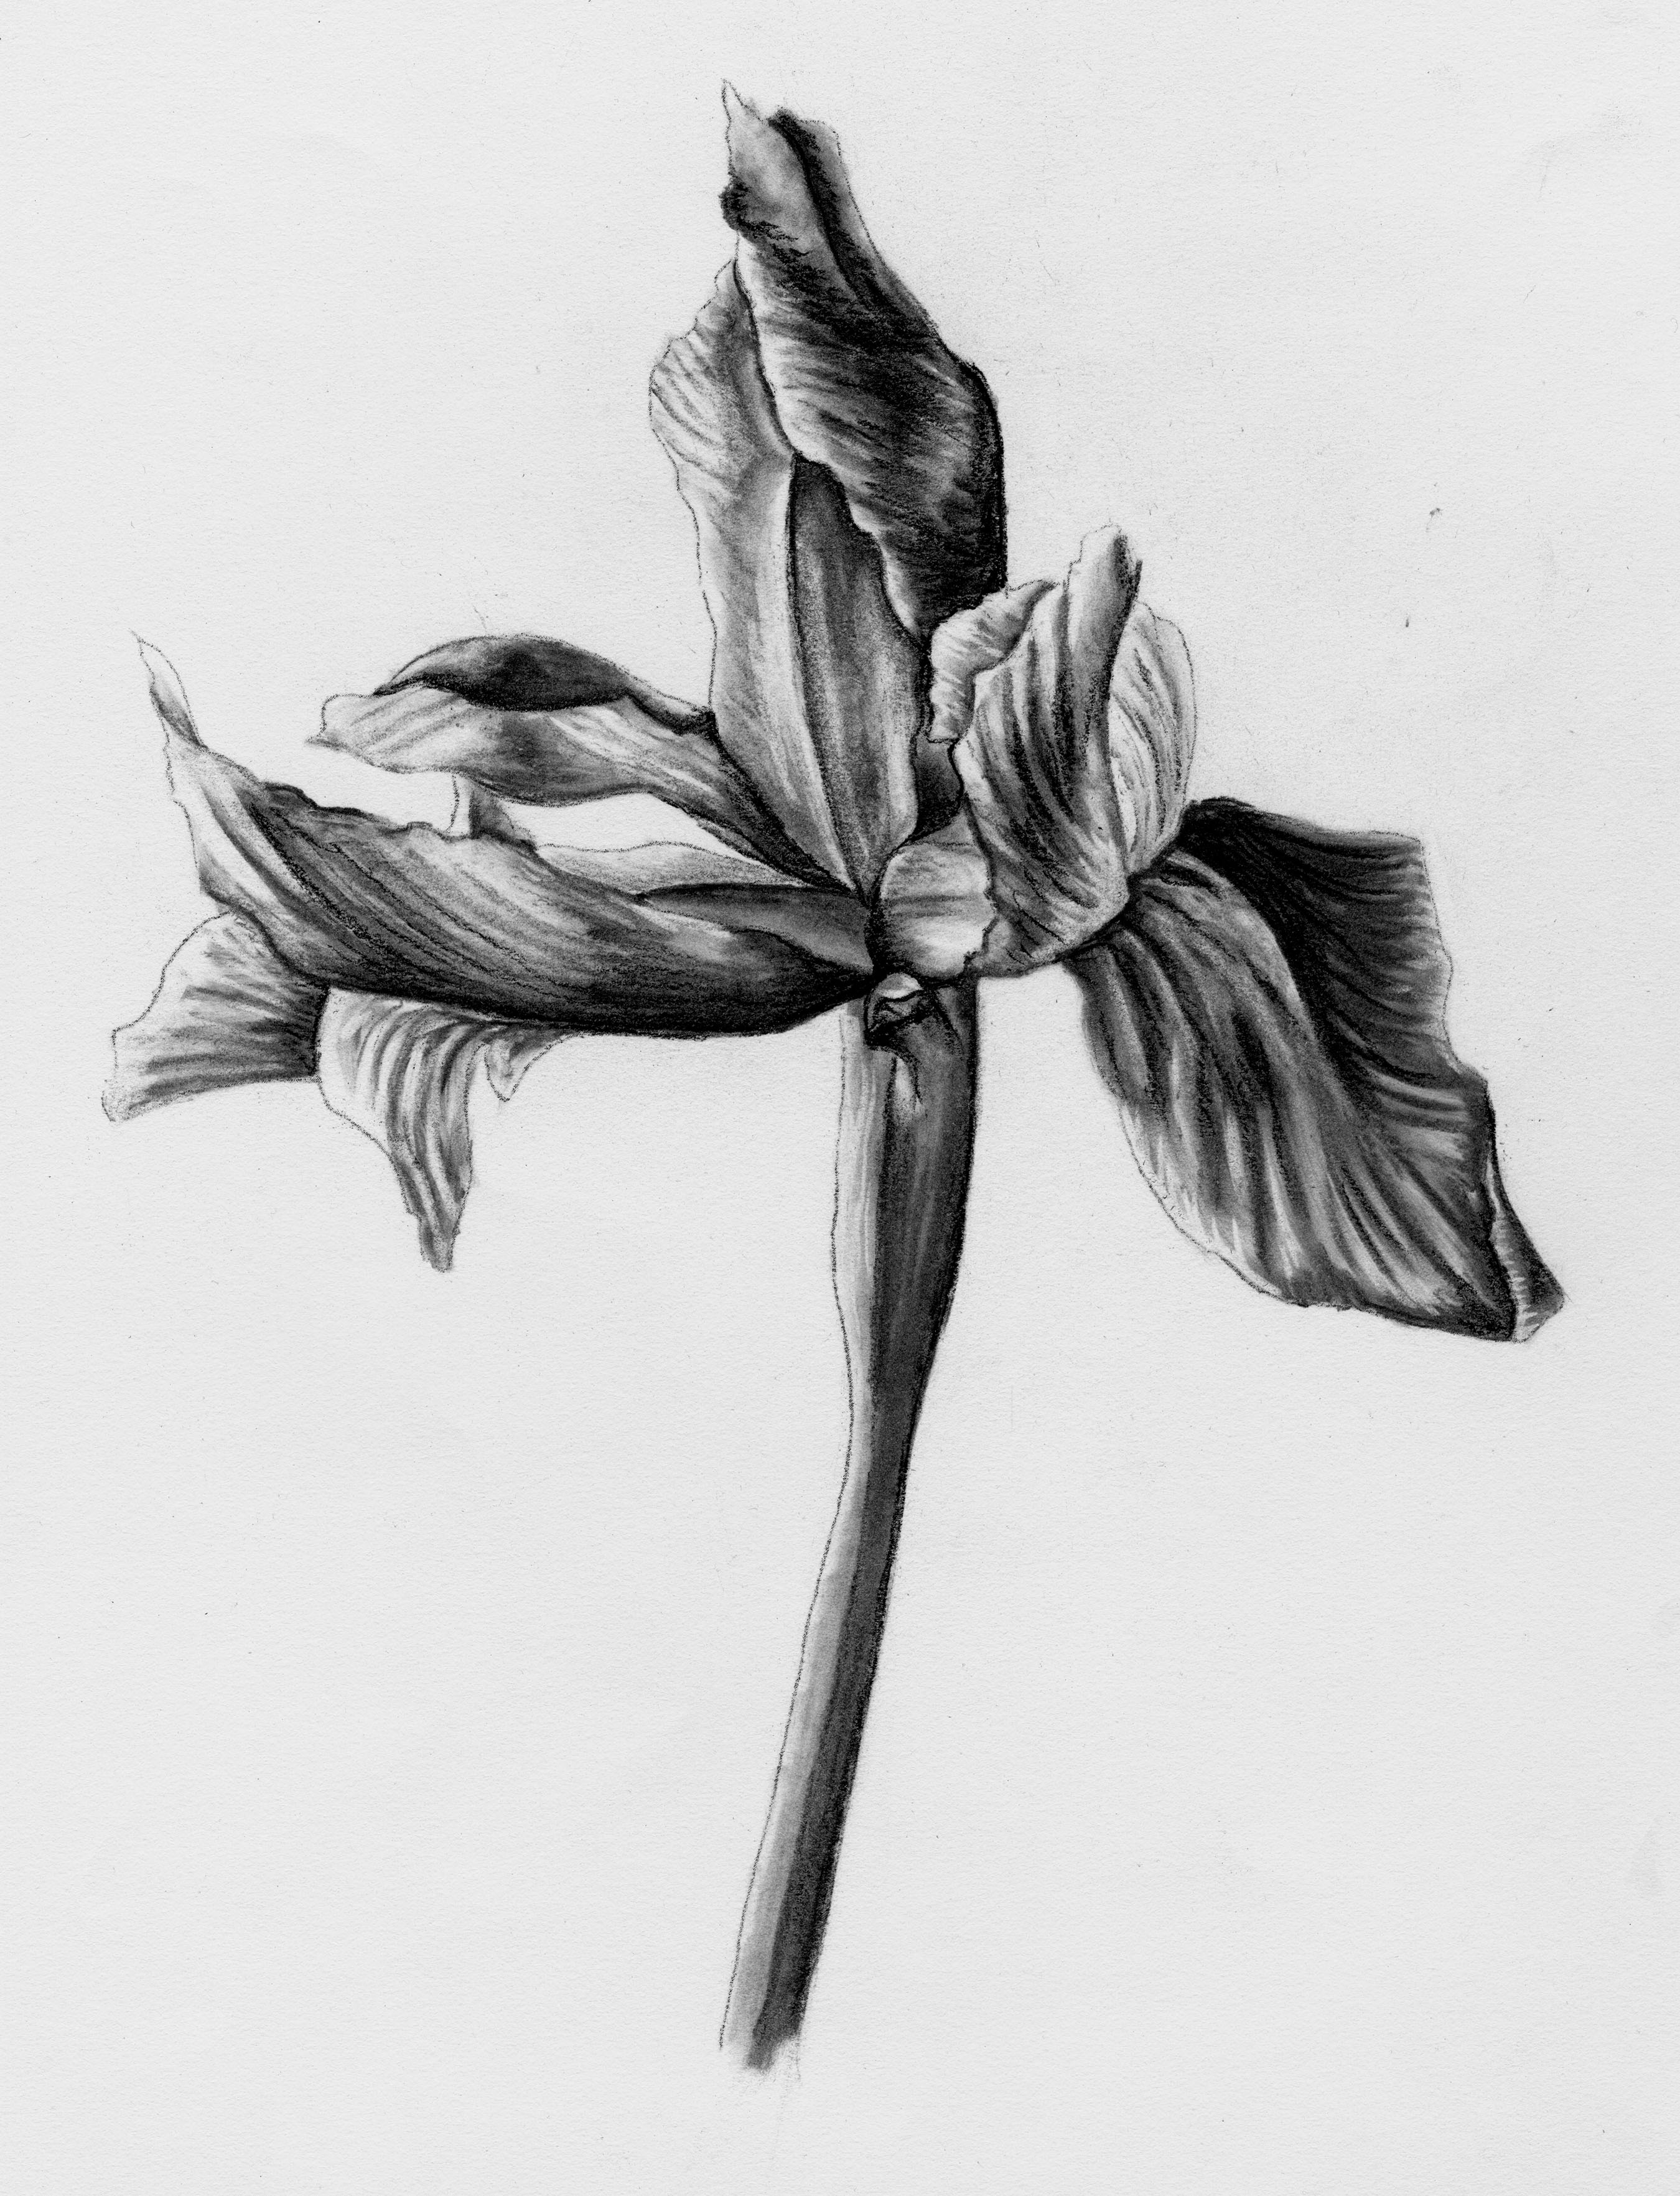 Charcoal rendering of a single iris.